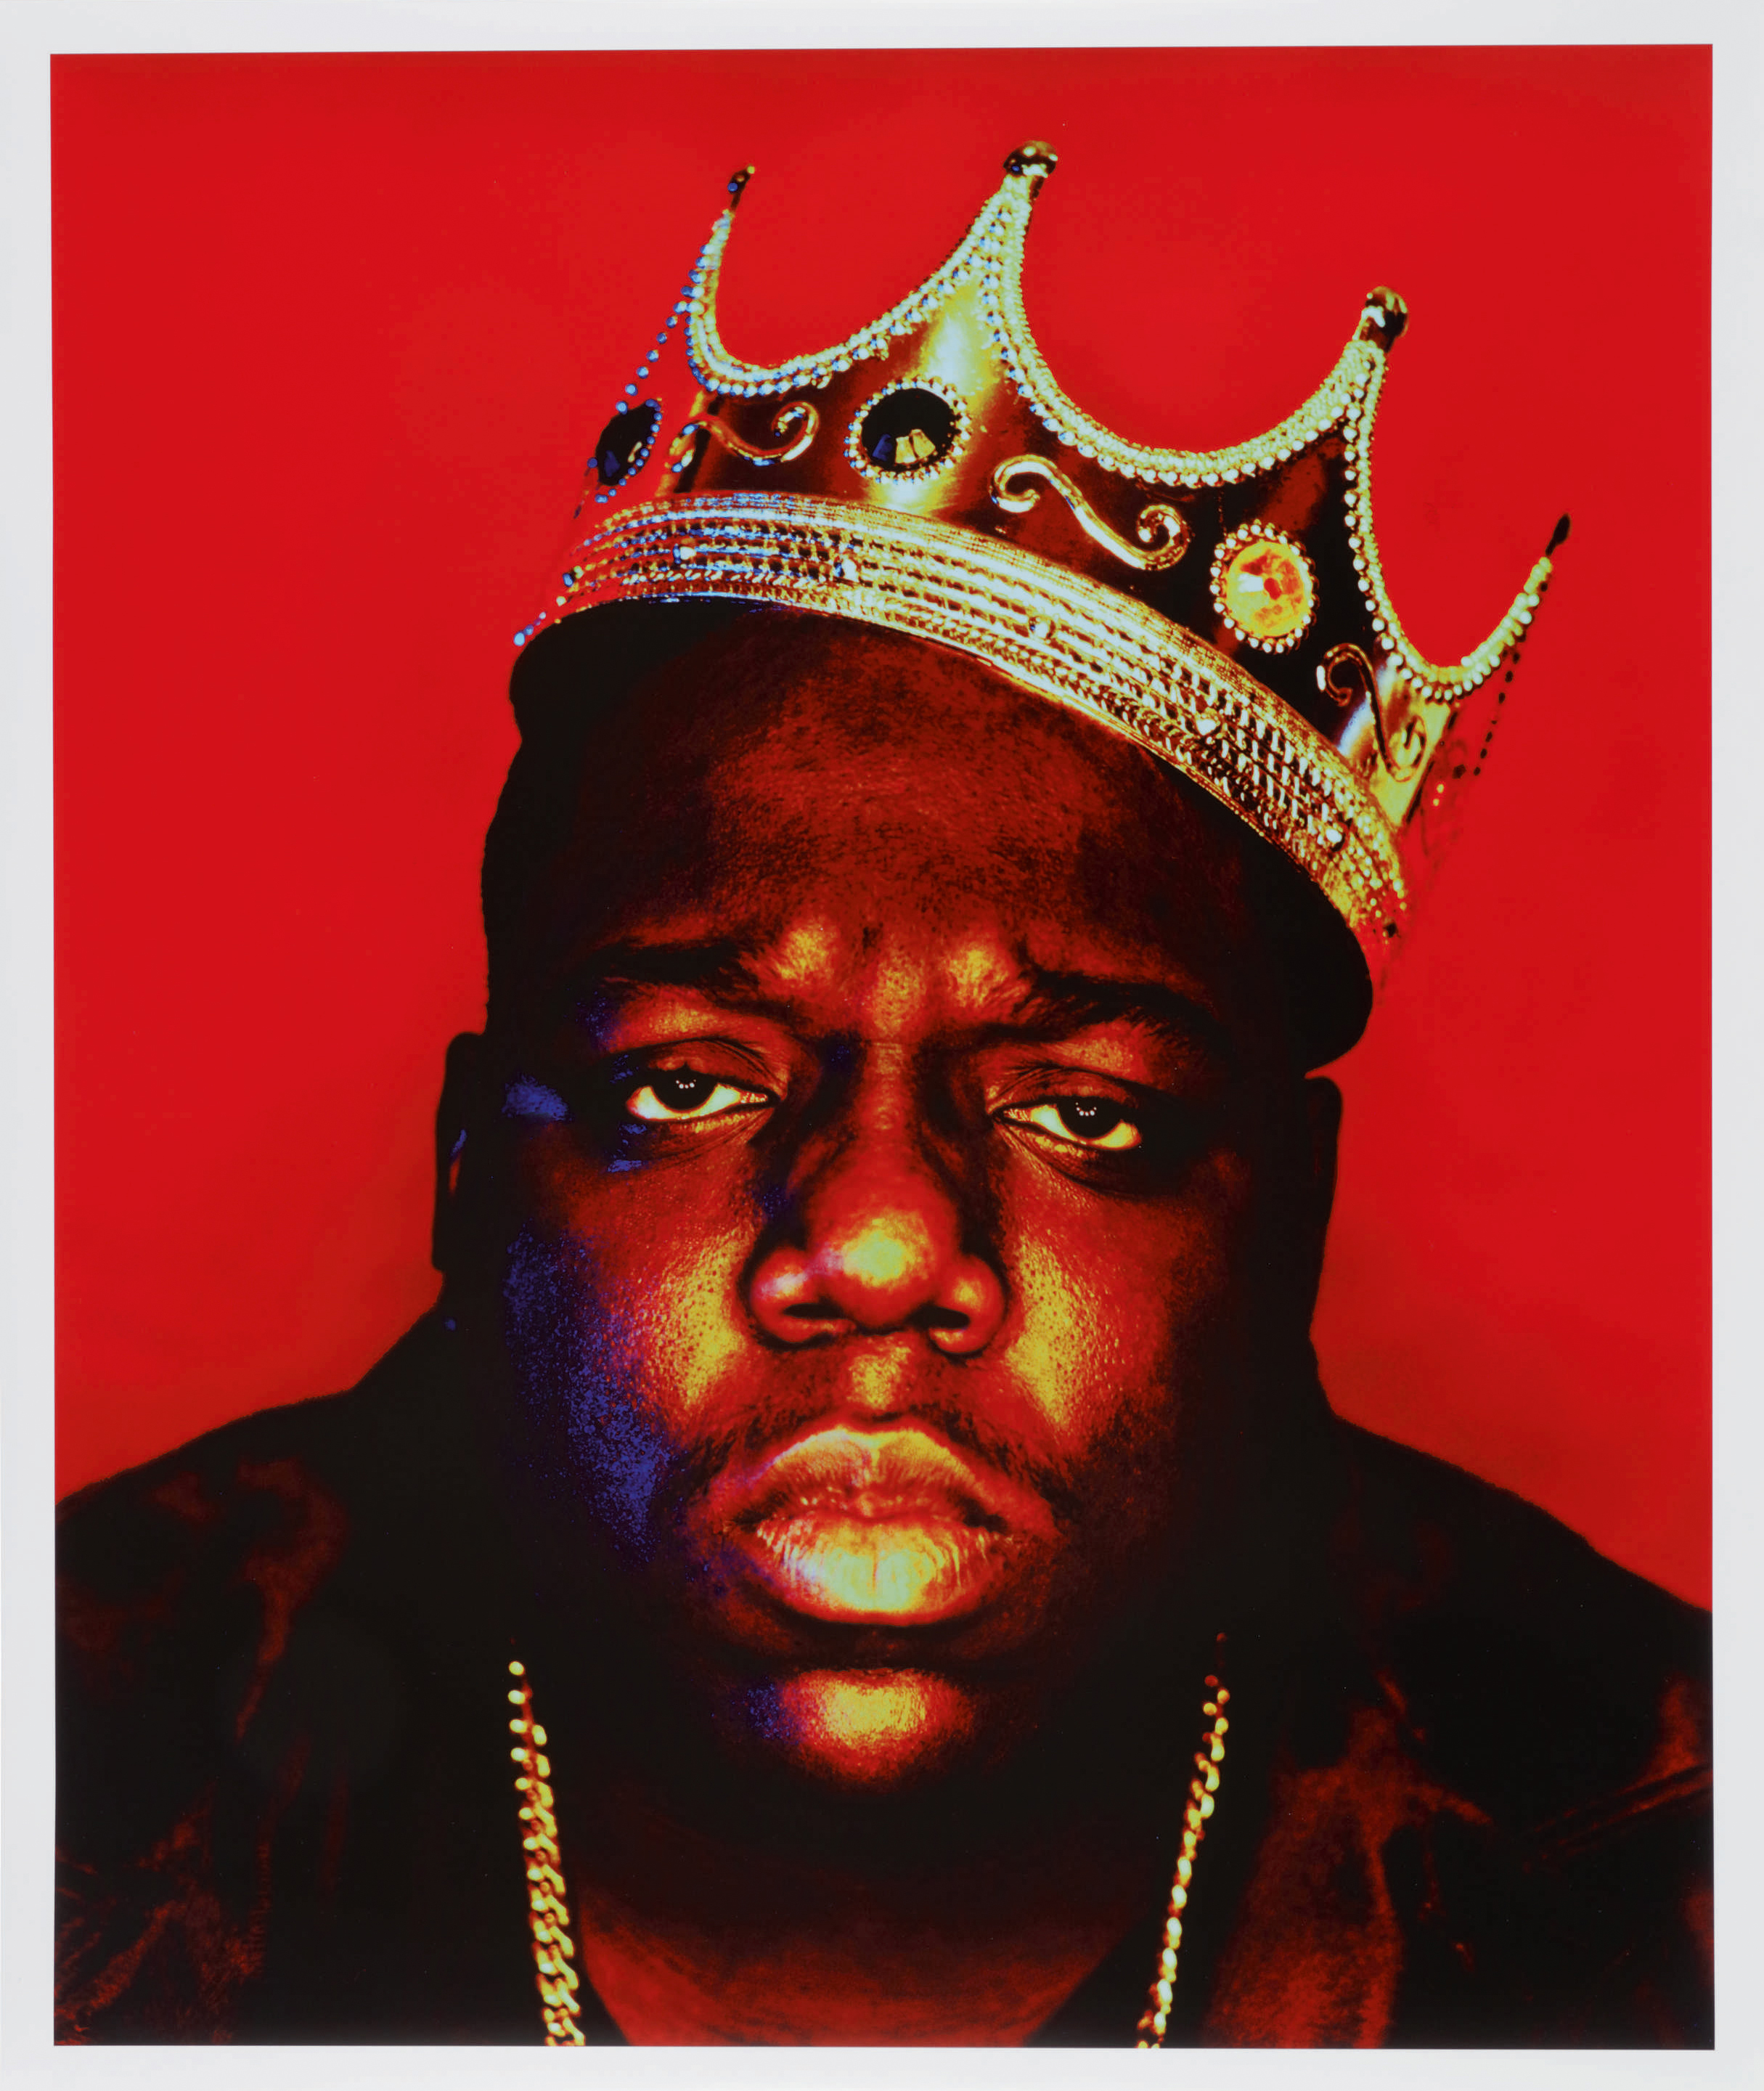 Notorious B.I.G. by Barren Claiborne for Rap Pages magazine in 1997